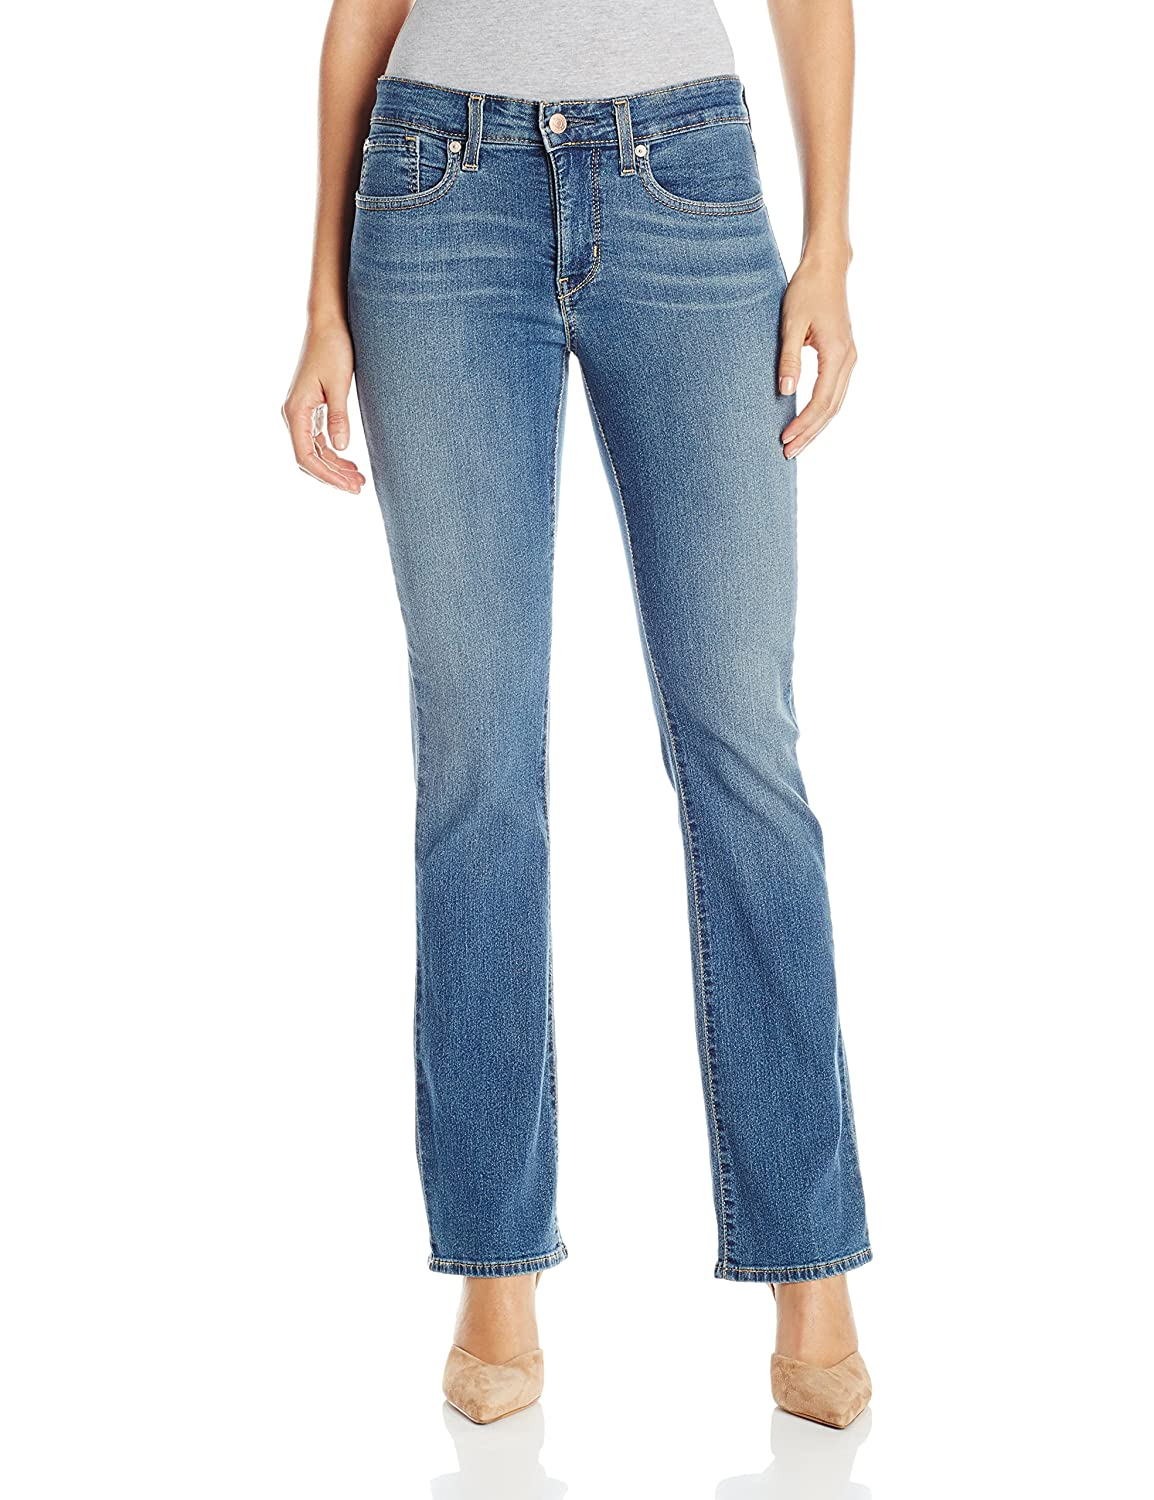 Signature by Levi Strauss & Co. Gold Label Women's Totally Shaping Bootcut Jean 94453-0009